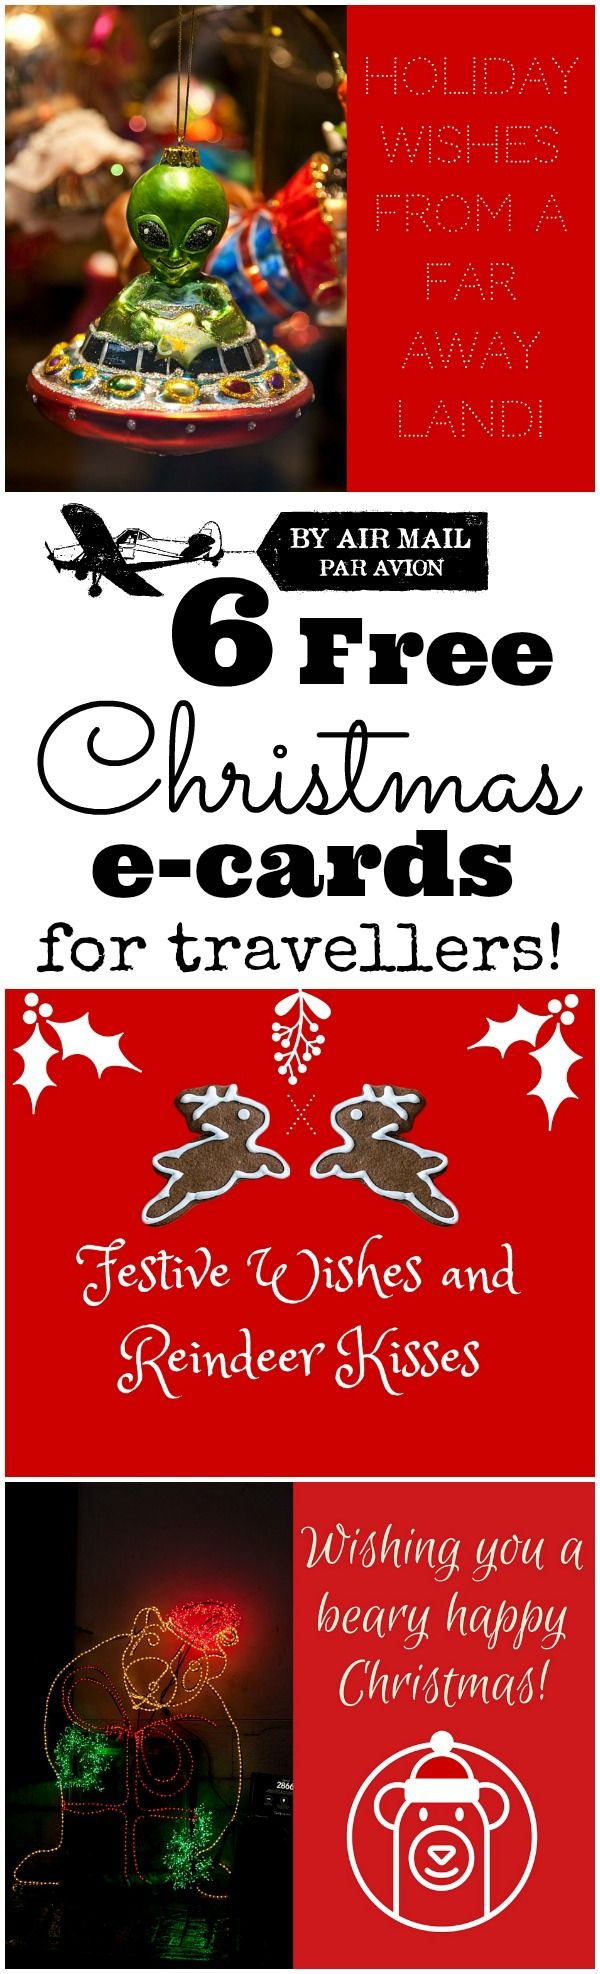 6 Free Christmas E-Cards for Travellers